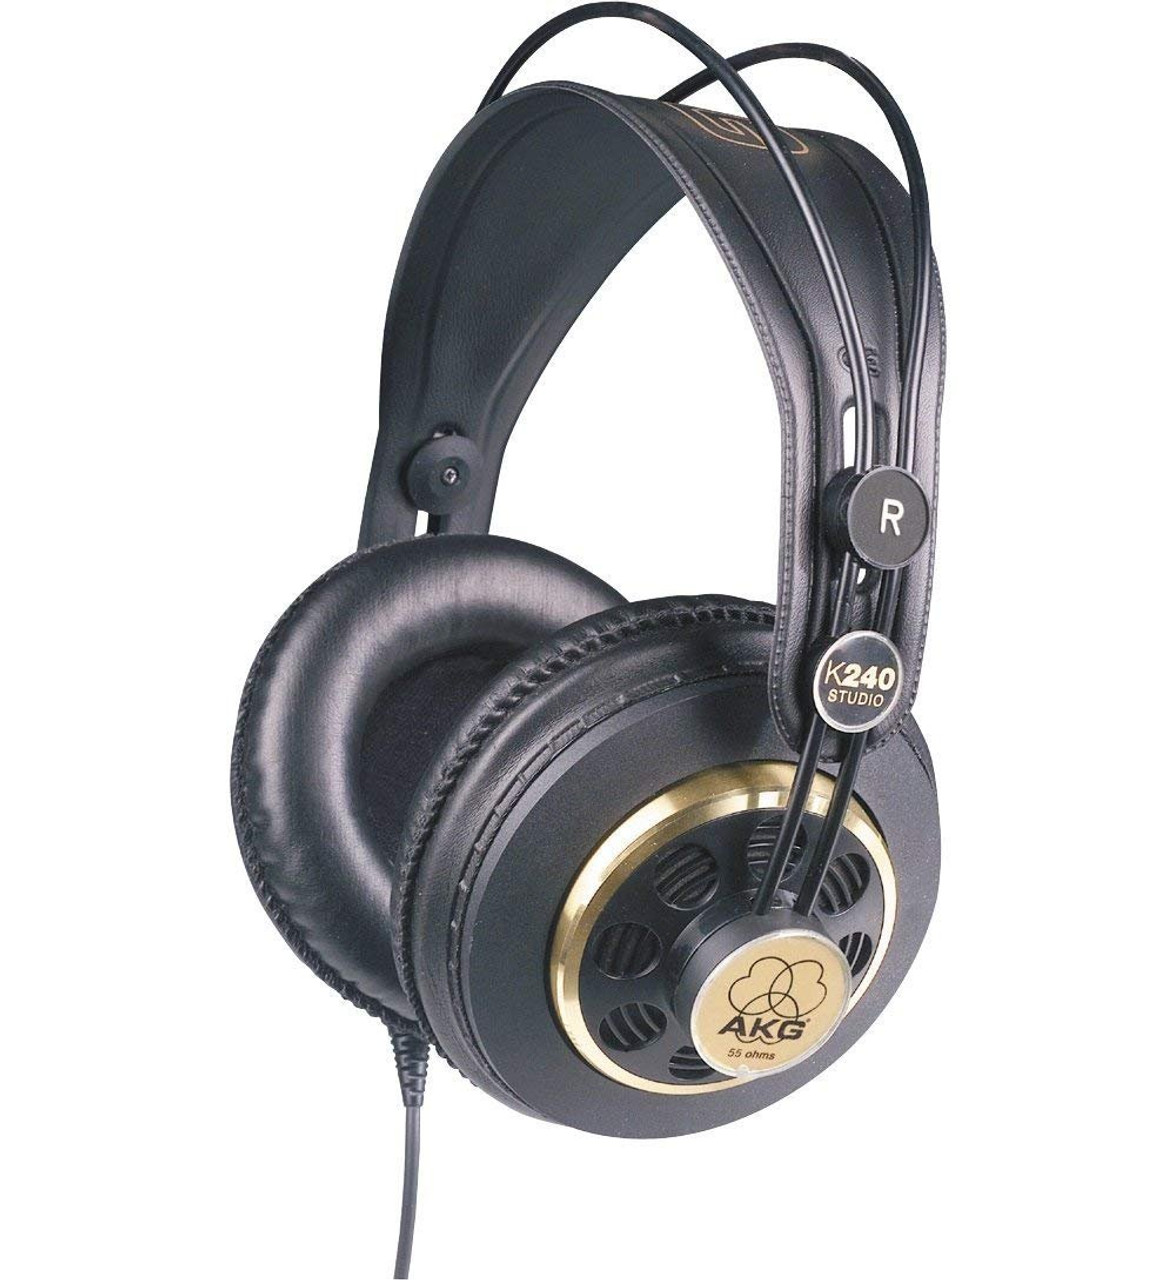 584f842e4e9 AKG K240STUDIO Semi-Open Over-Ear Professional Studio Headphones ...